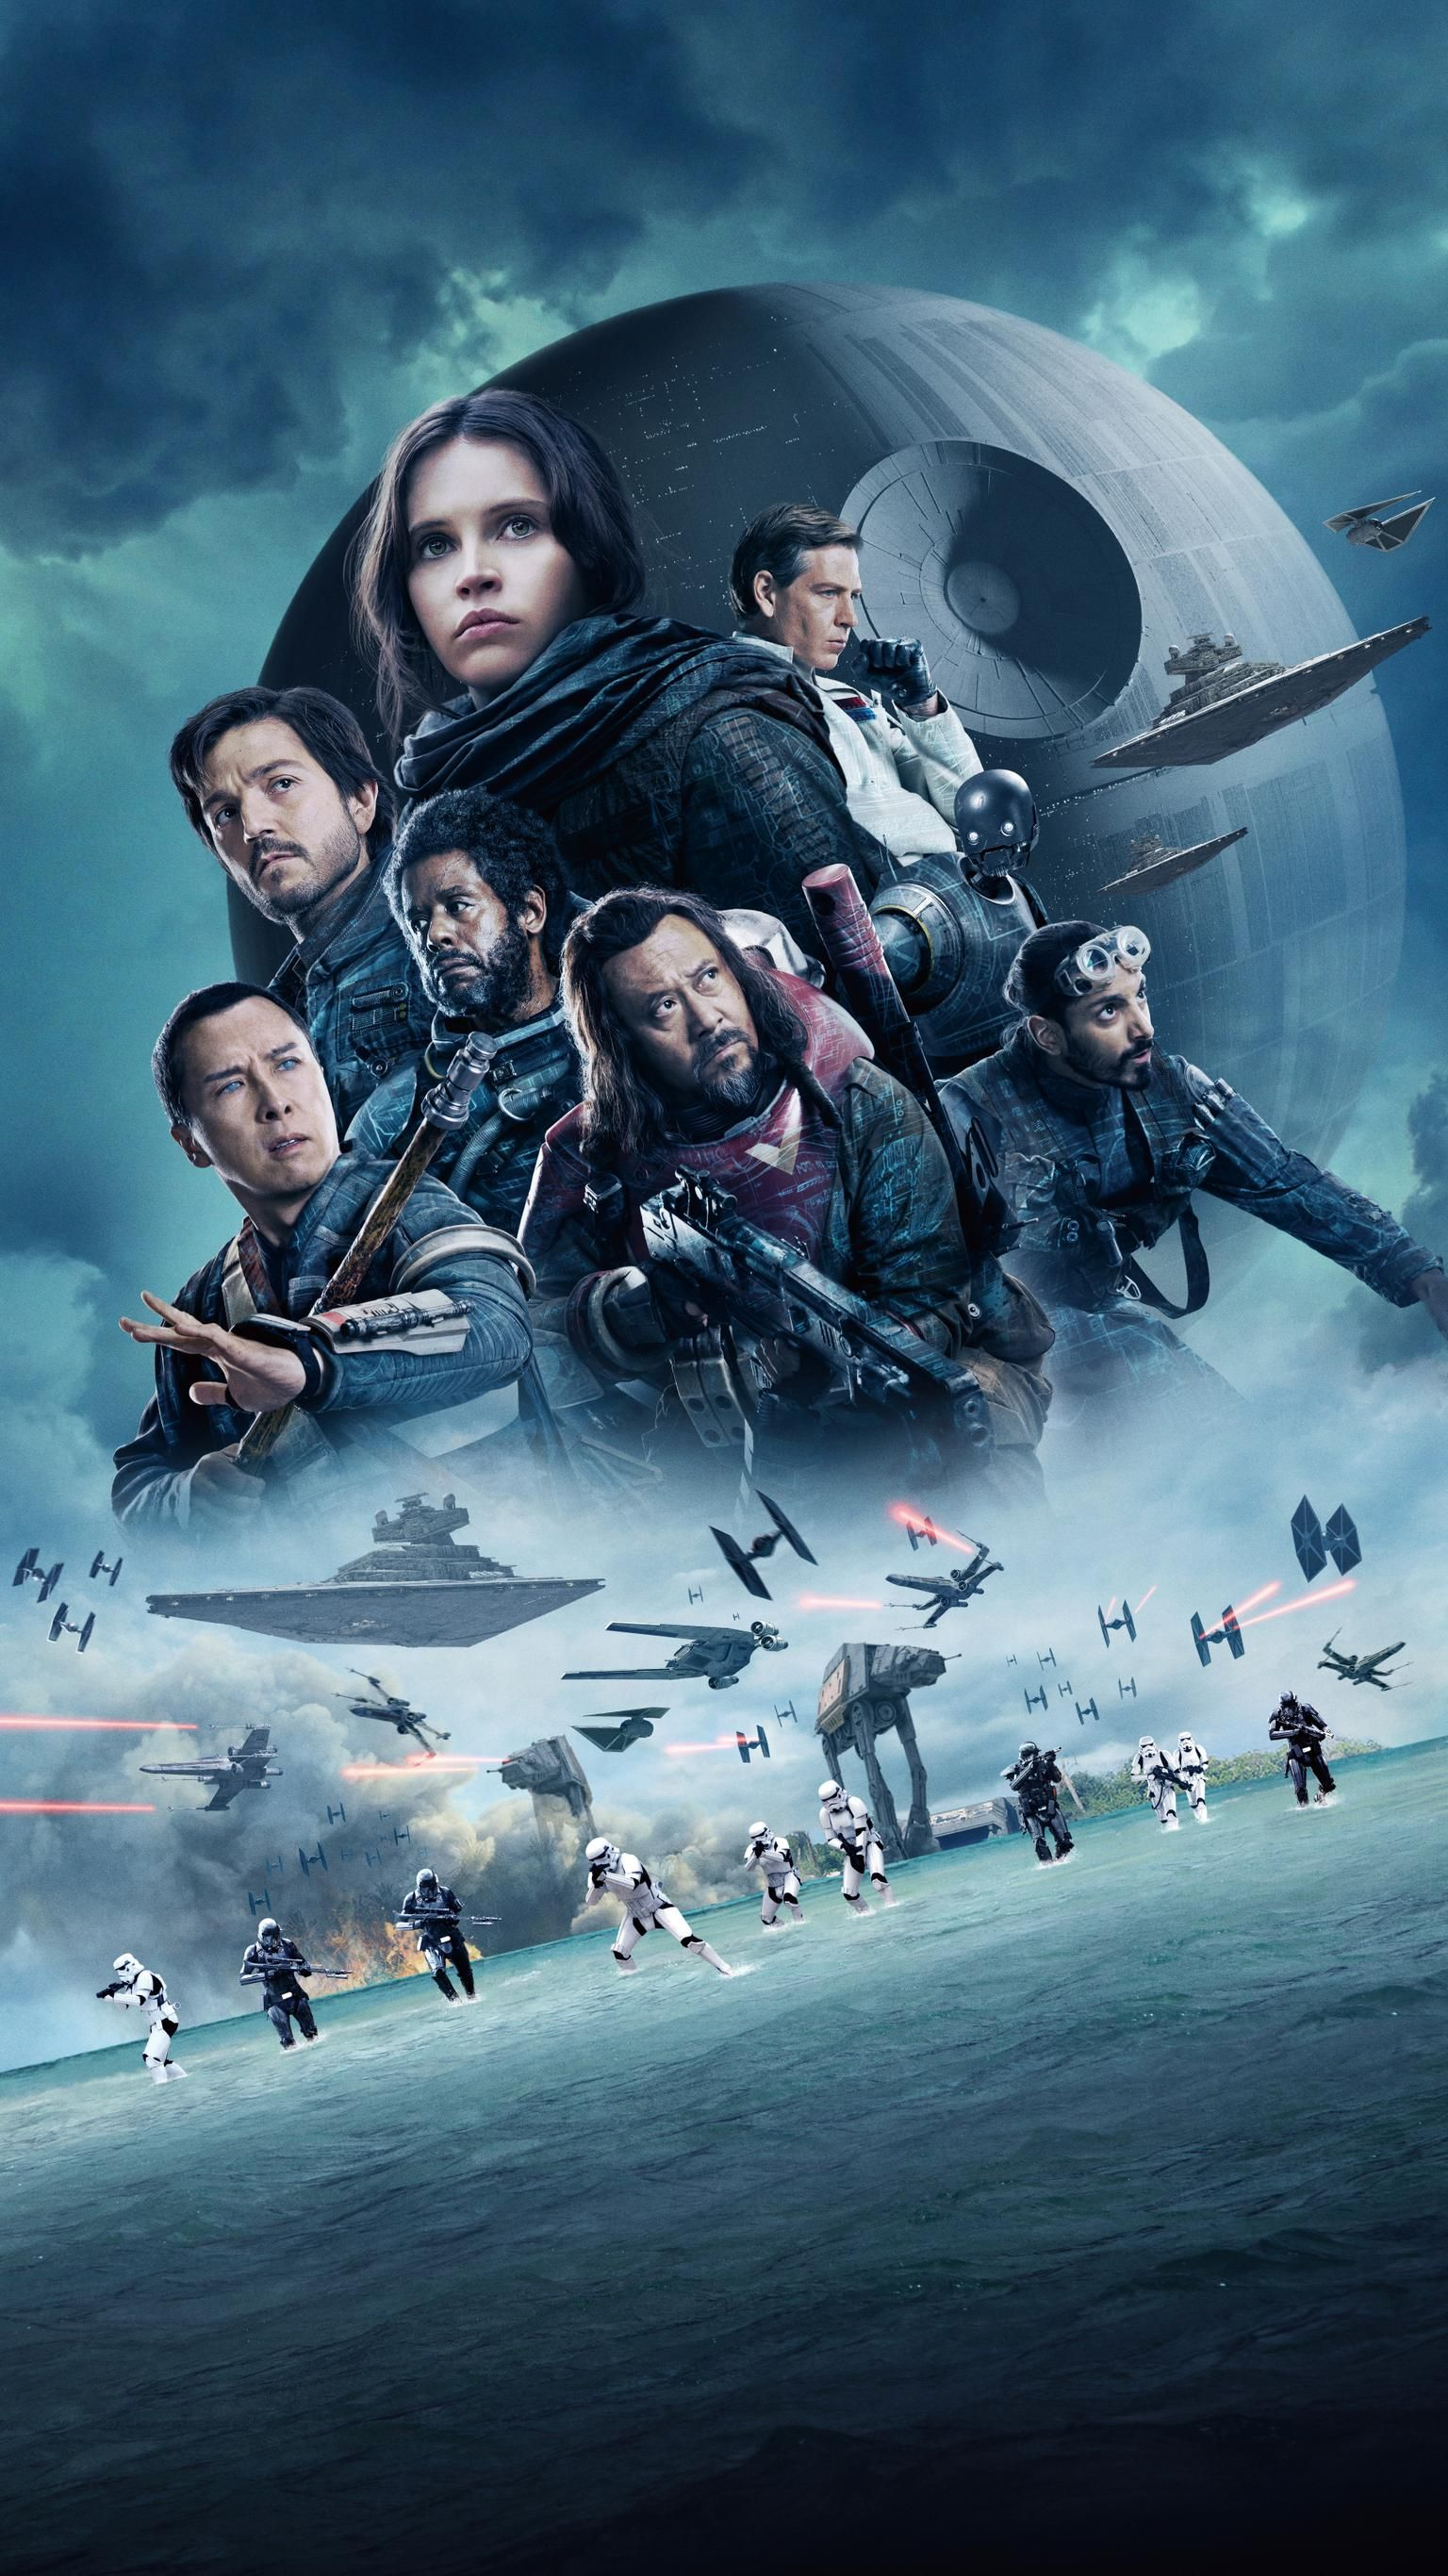 Rogue One A Star Wars Story 2016 Phone Wallpaper スター